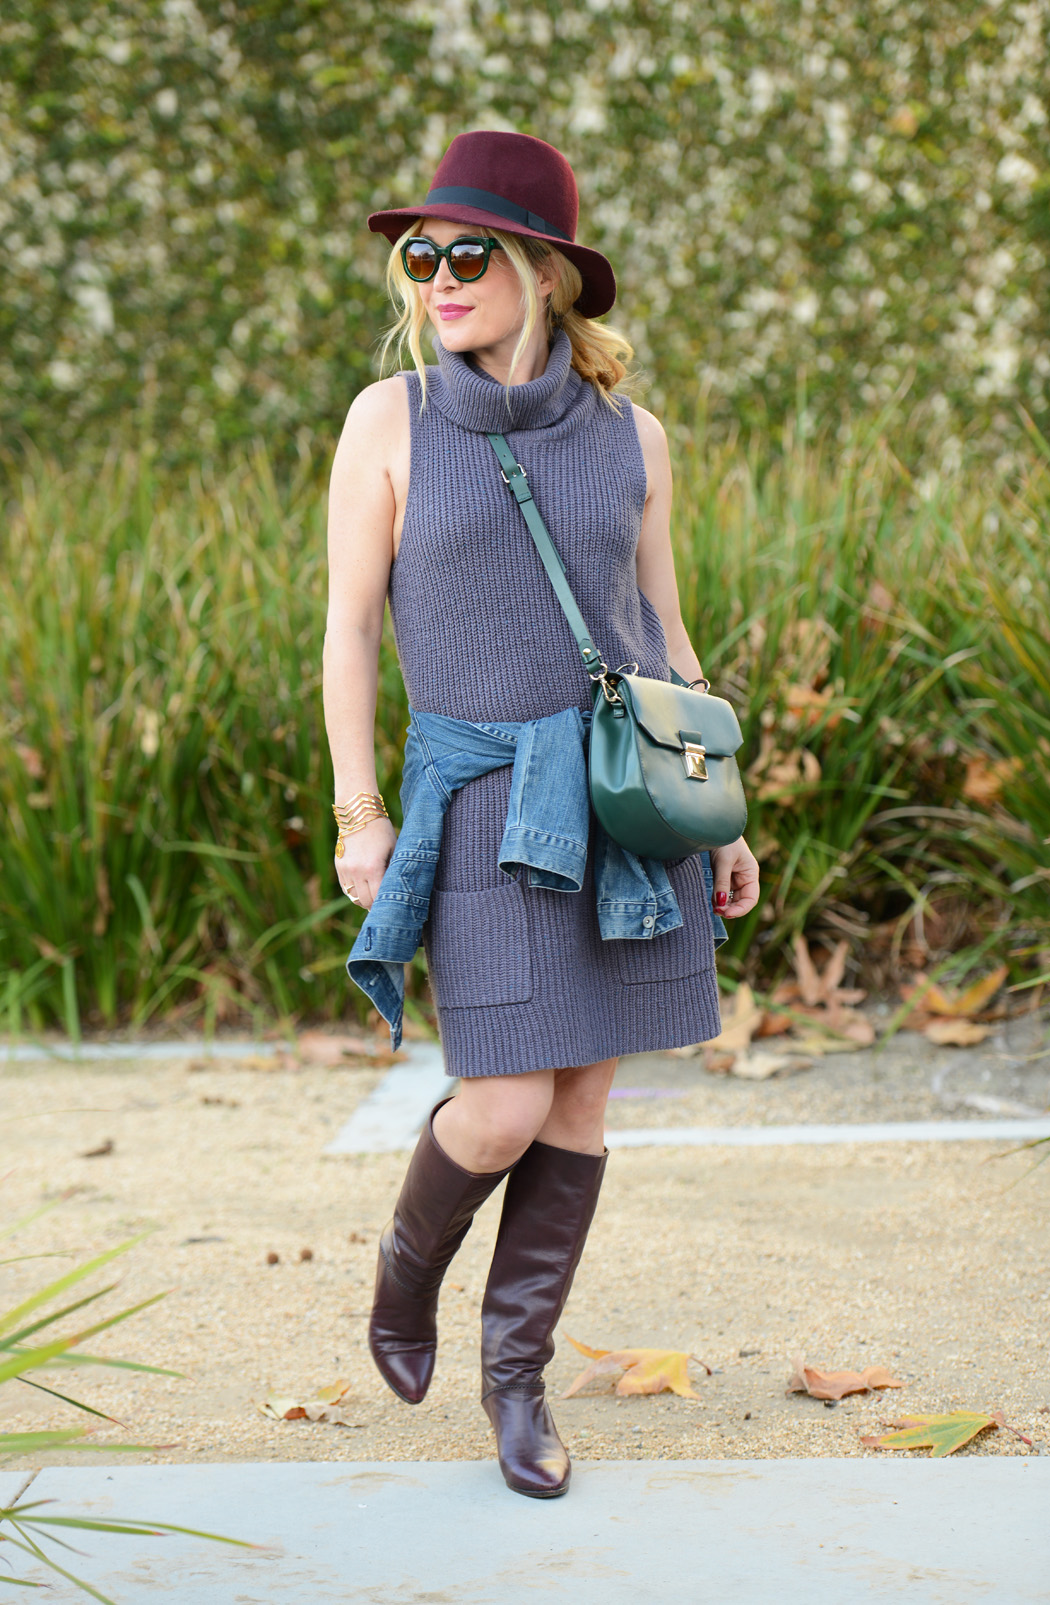 Knitting Wear 2016 : Knit dress vintage boots the hunter collector